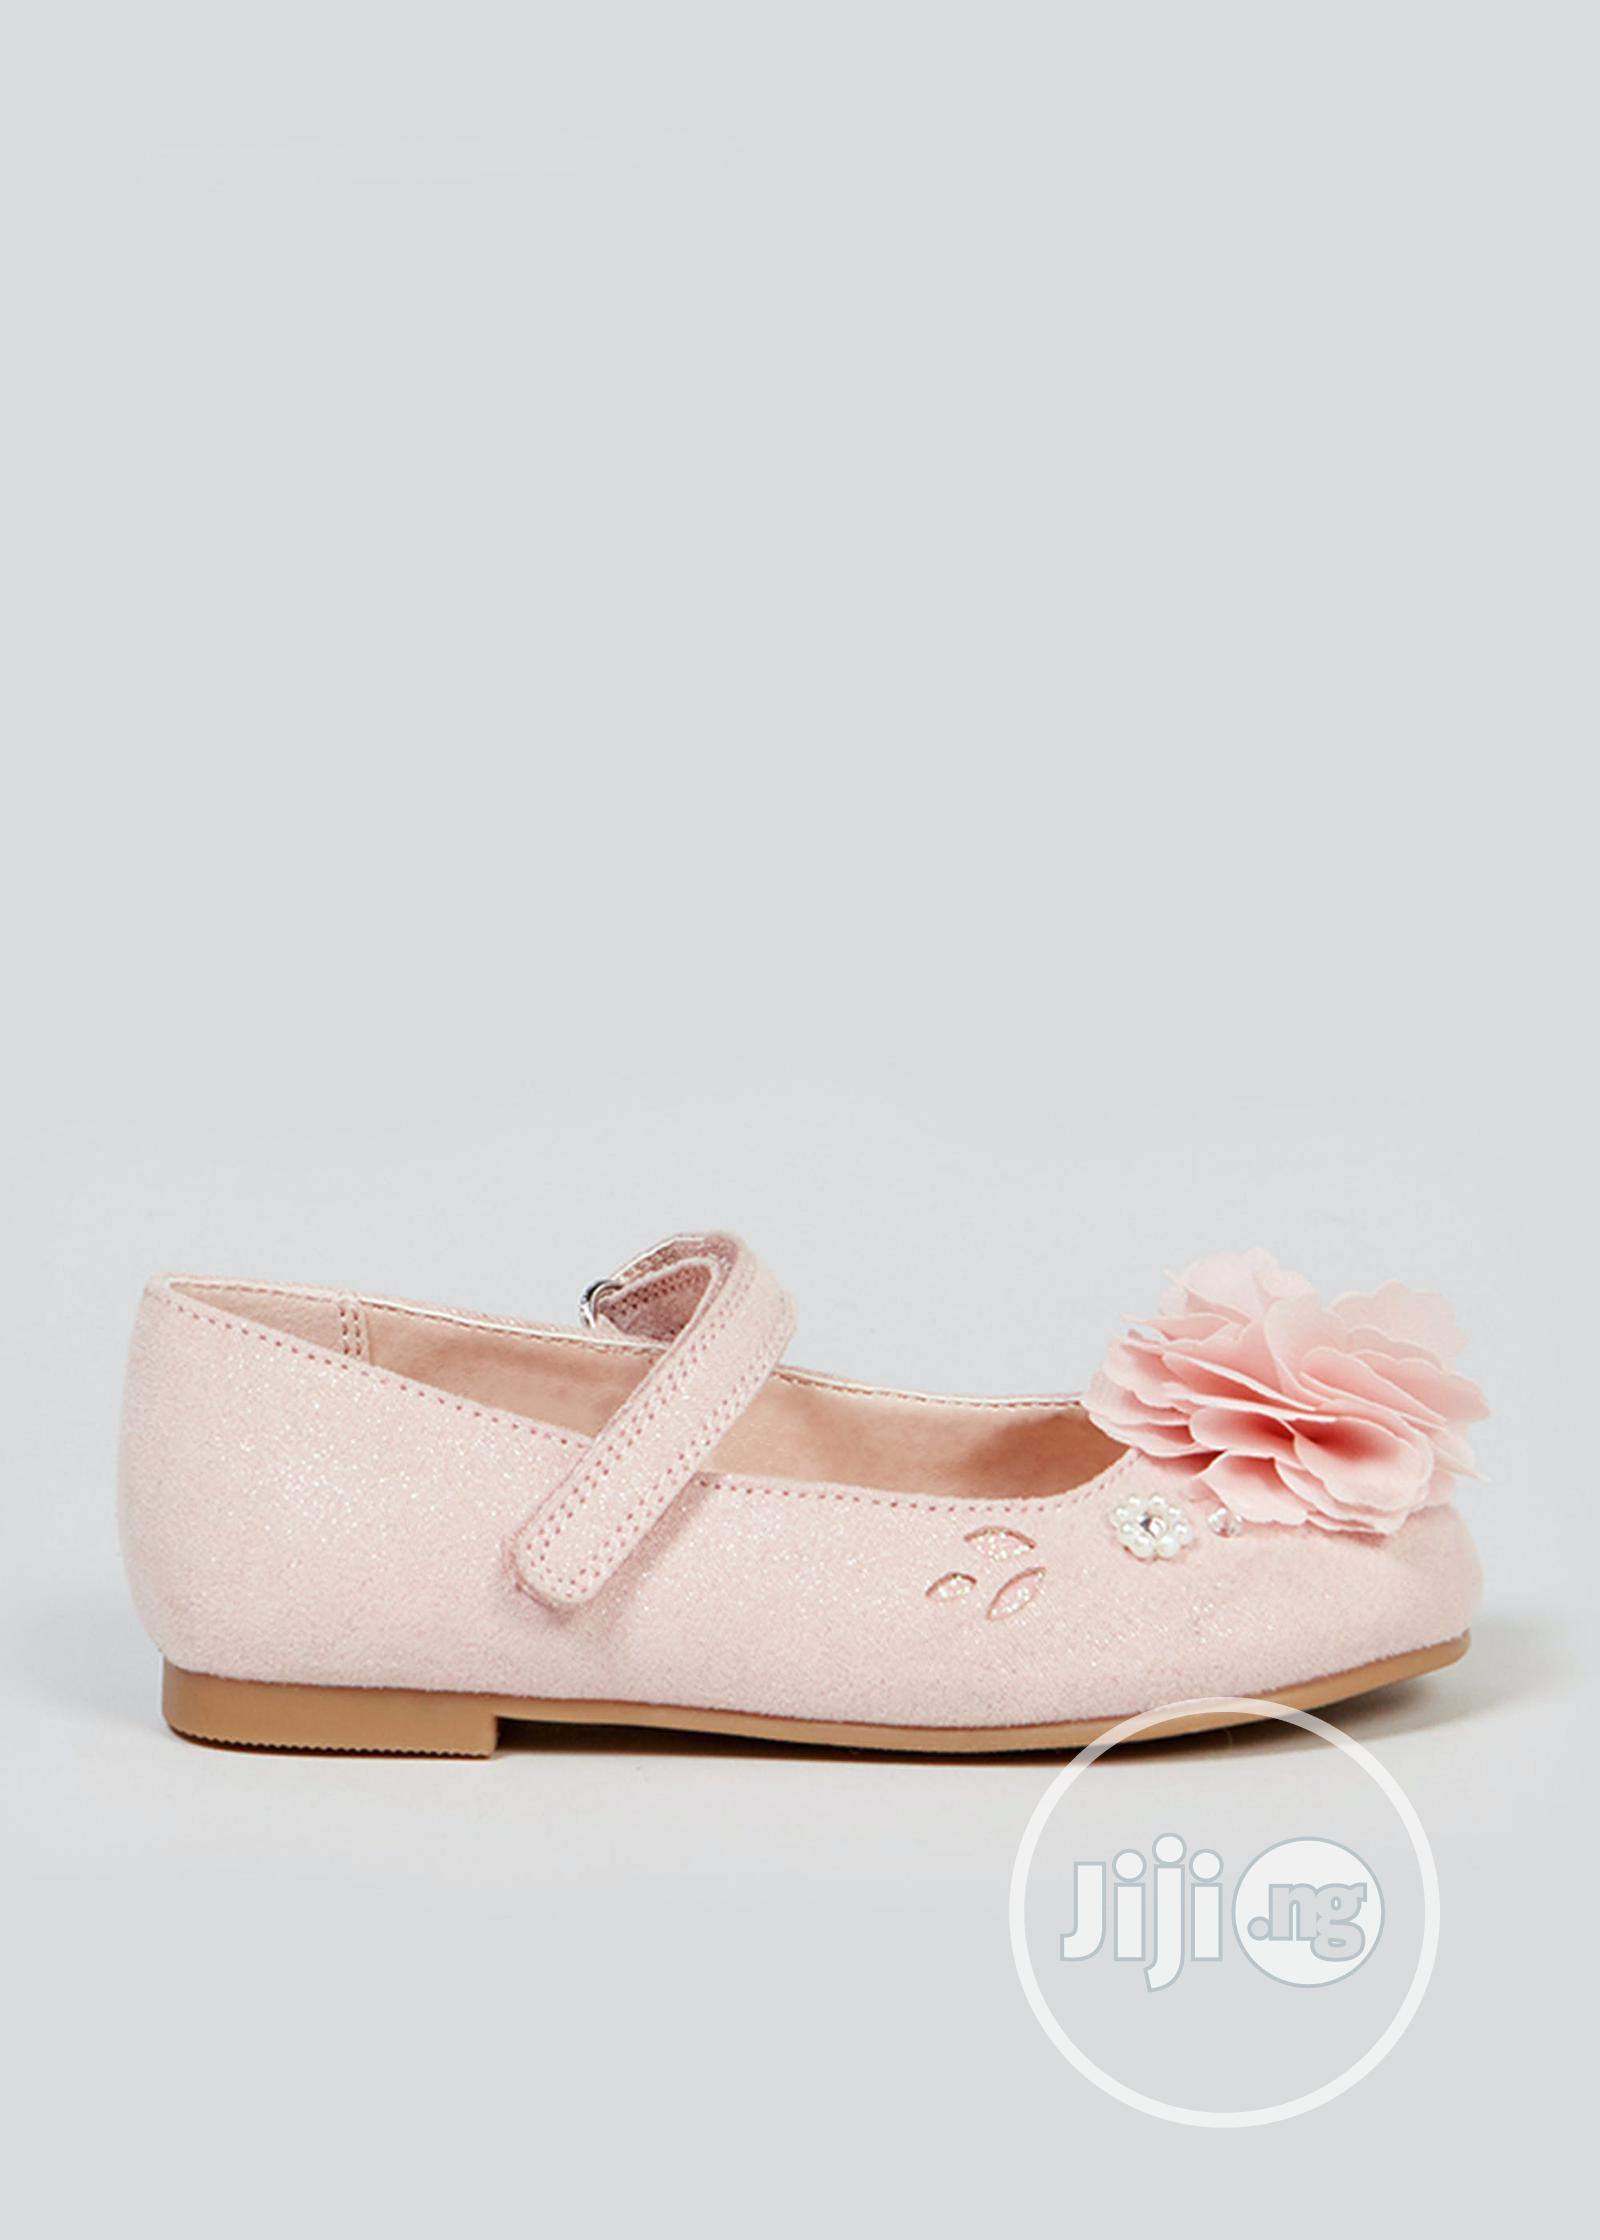 Matalan Girls Pink Ballet Shoes   Children's Shoes for sale in Surulere, Lagos State, Nigeria